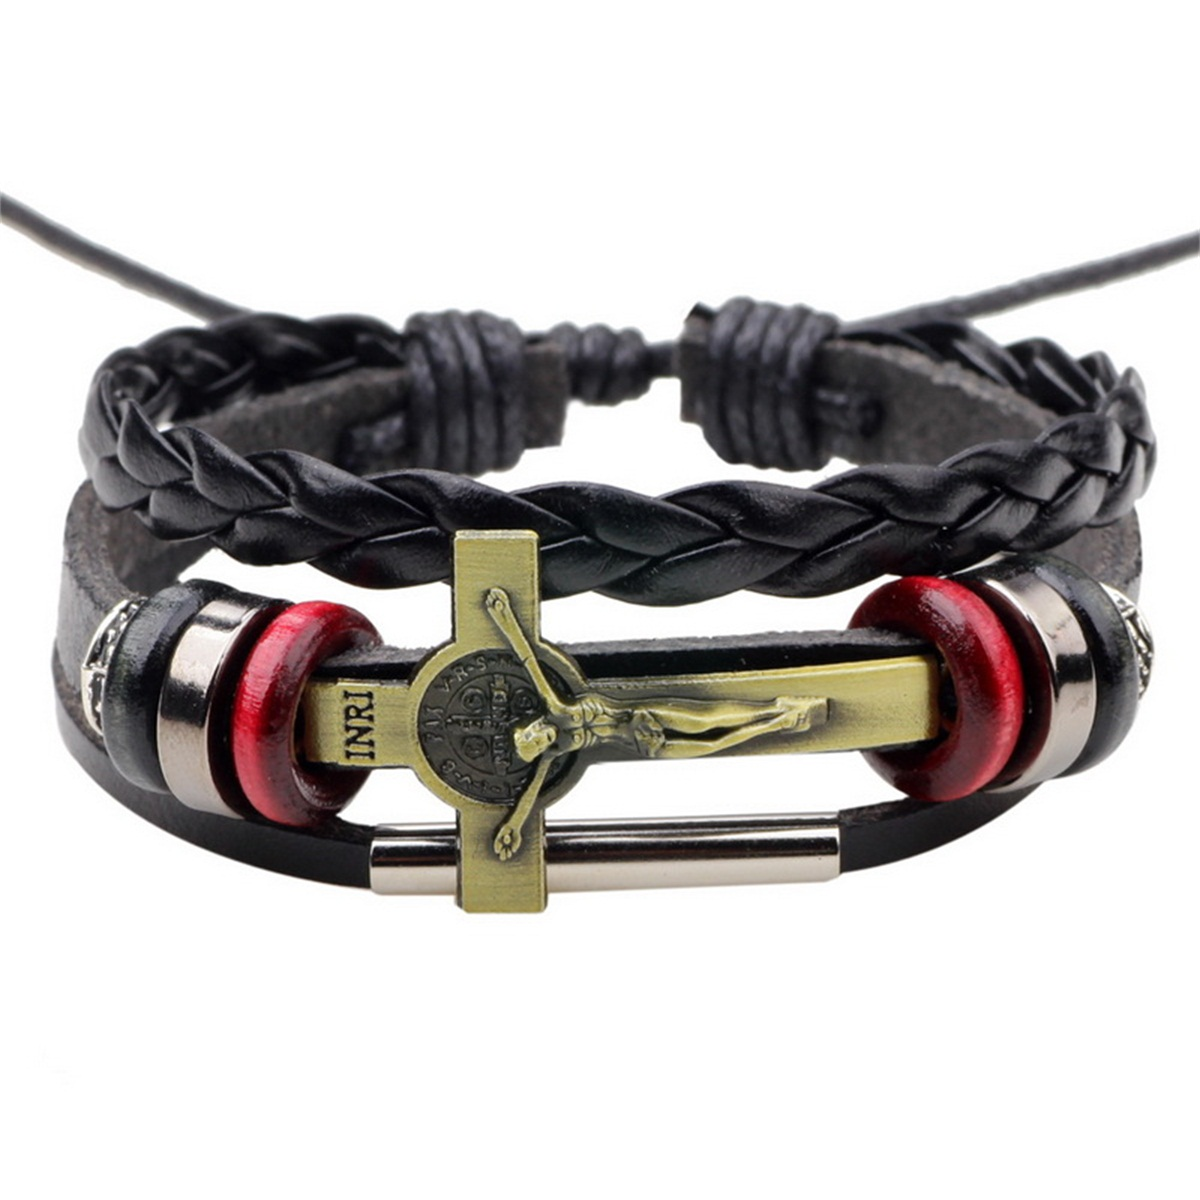 Multilayer Bracelet Men Casual Fashion Braided Leather Bracelets For Women Jesus Cross Bracelet Punk Rock Men Jewelry 2020